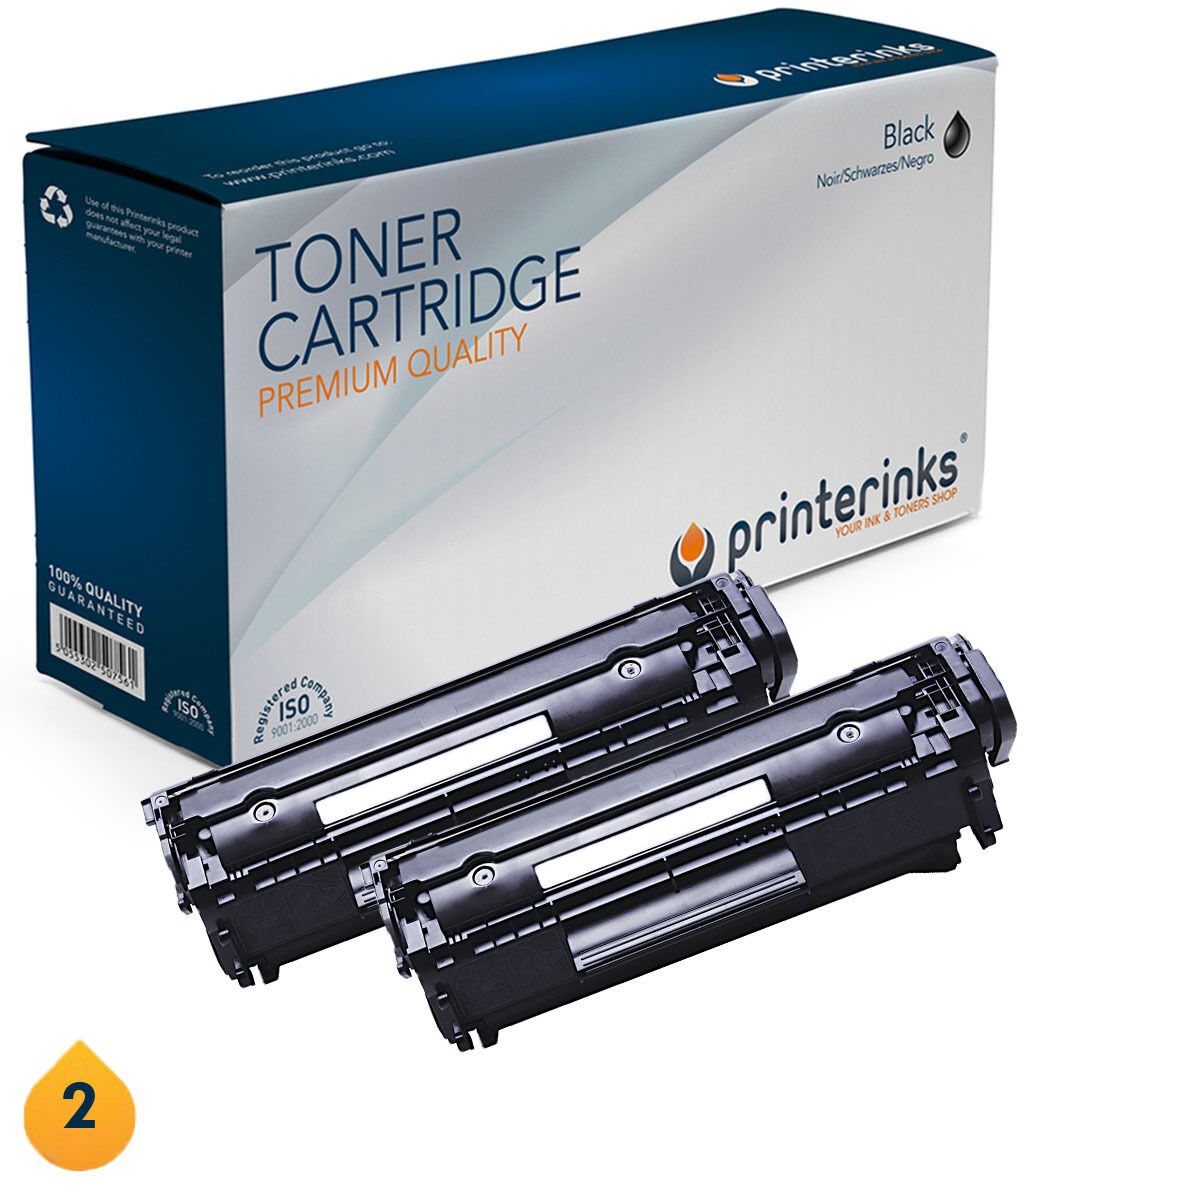 10PK Q2612A 12A Toner Compatible For HP LaserJet 1010 1015 1022 1022nw 3015 3030